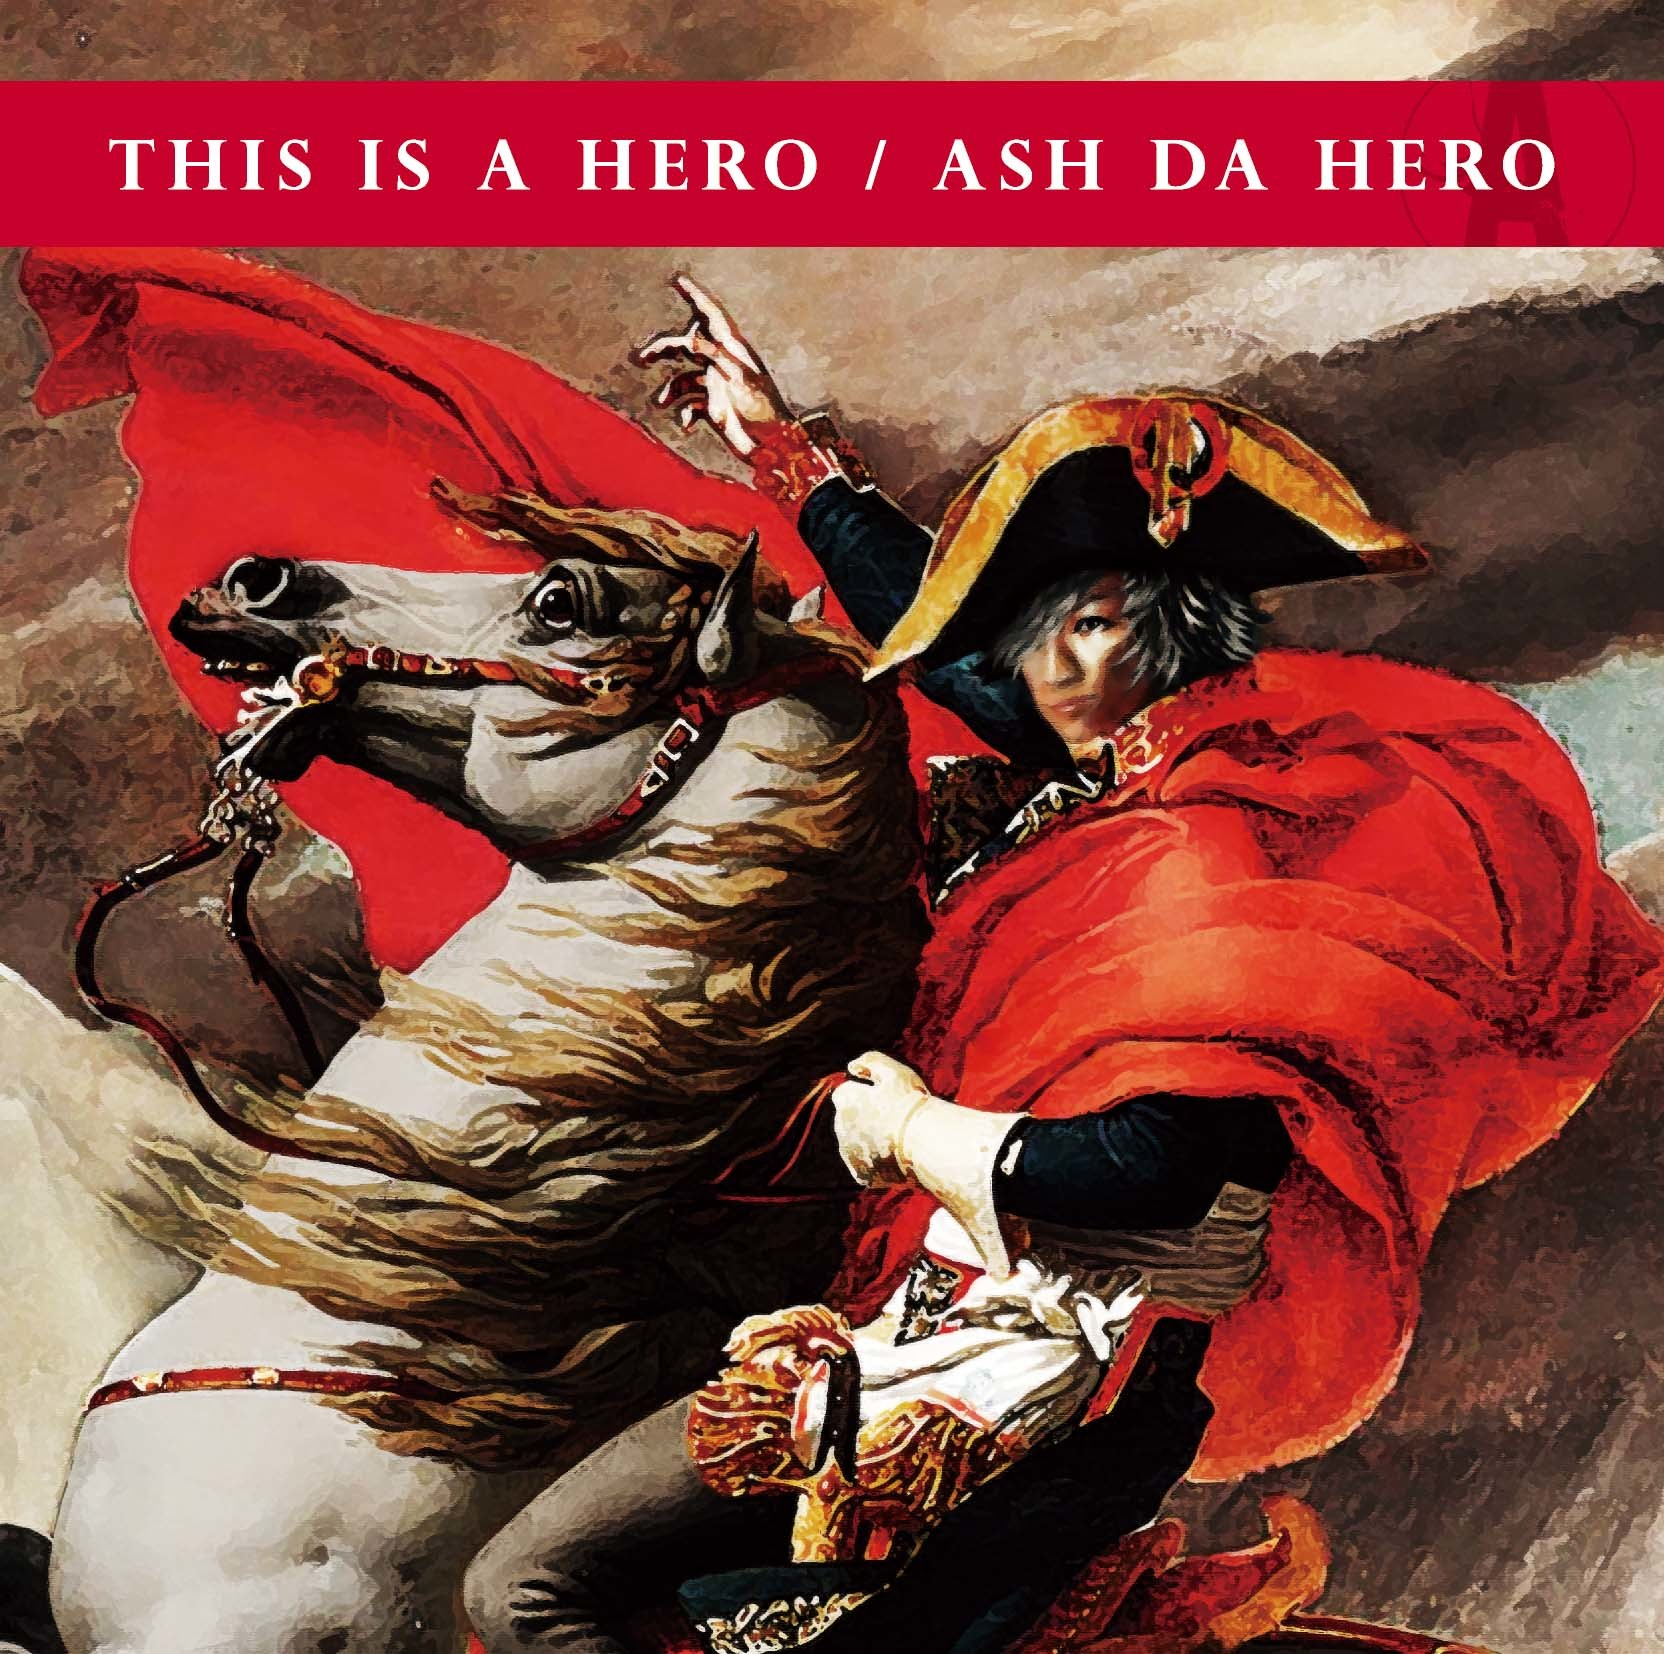 ASH DA HERO『THIS IS A HERO』